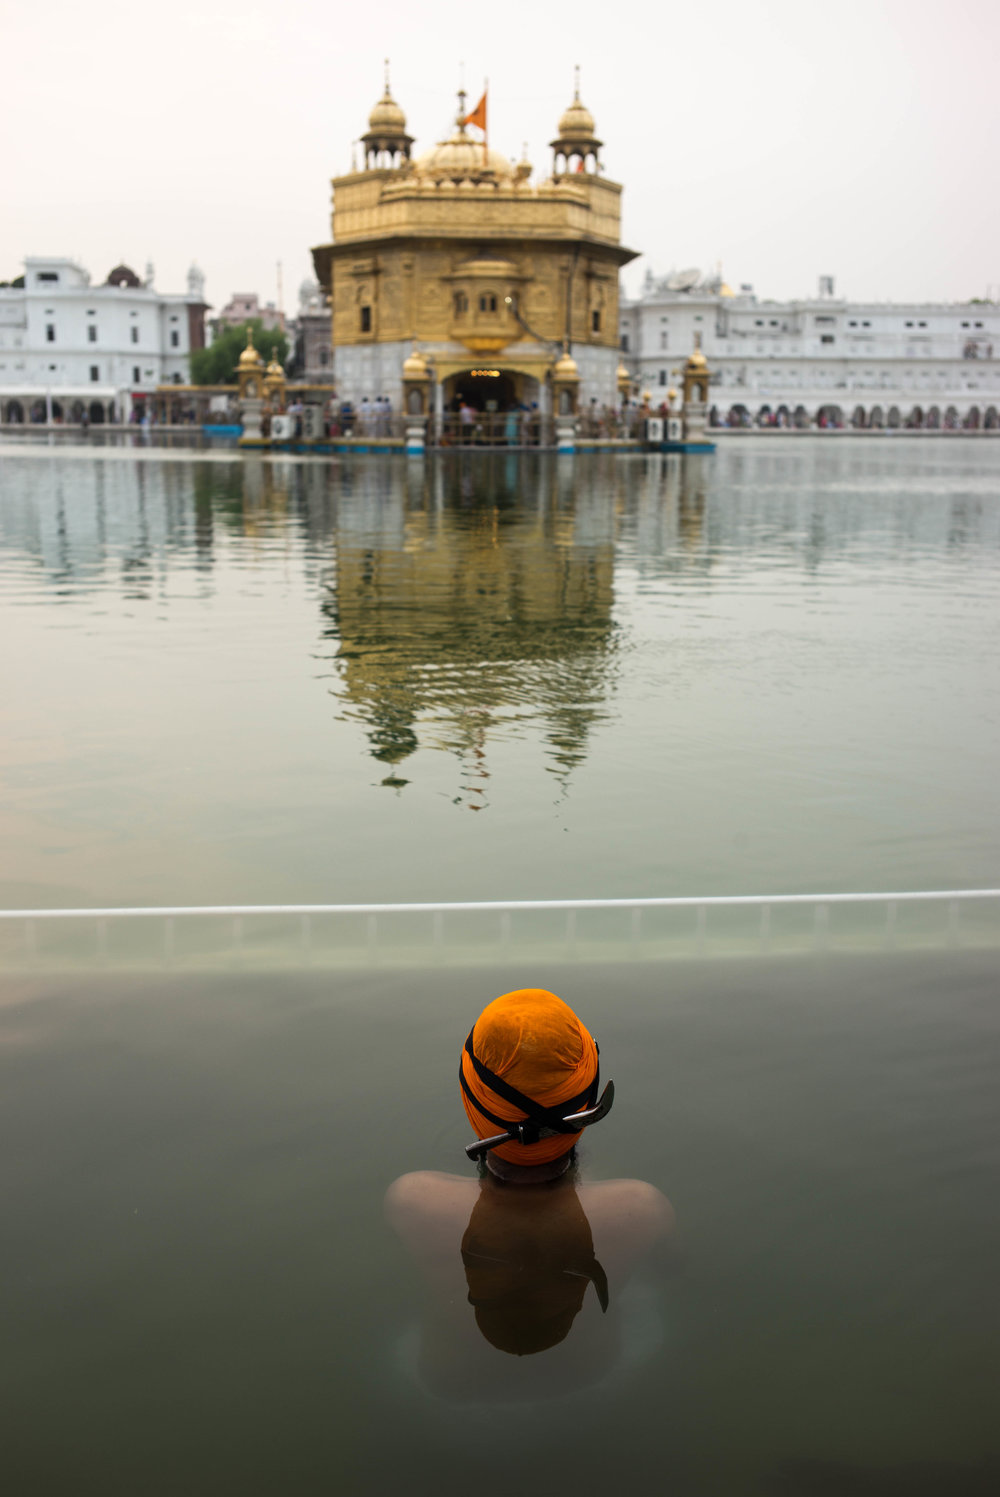 The Sikhs, Pilgrims of the Golden Temple